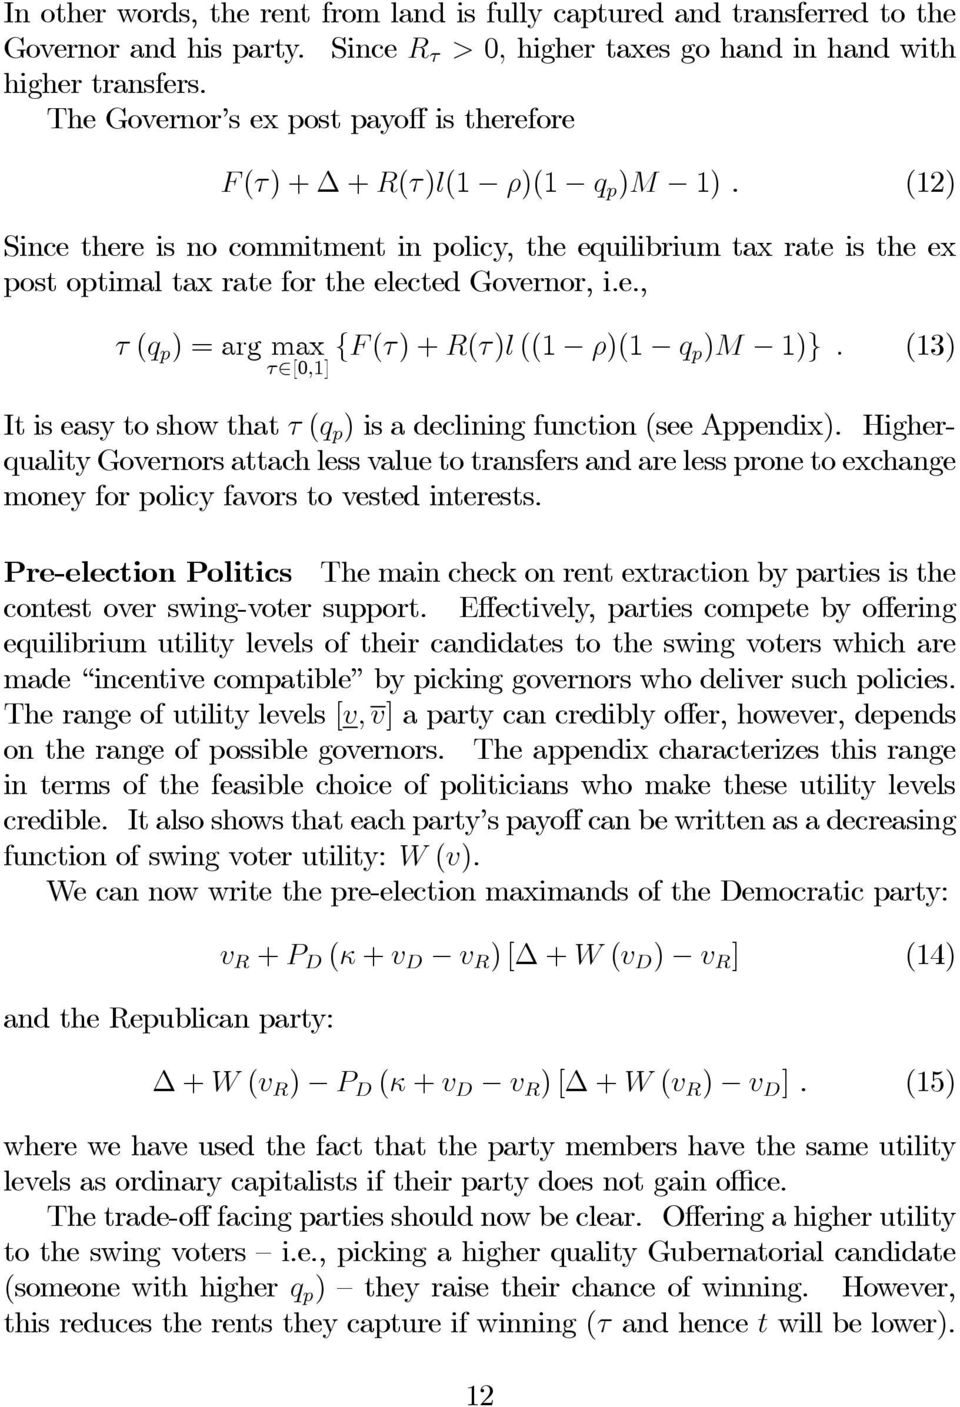 (12) Since there is no commitment in policy, the equilibrium tax rate is the ex post optimal tax rate for the elected Governor, i.e., τ (q p )=argmax τ [0,1] {F (τ)+r(τ)l ((1 ρ)(1 q p)m 1)}.